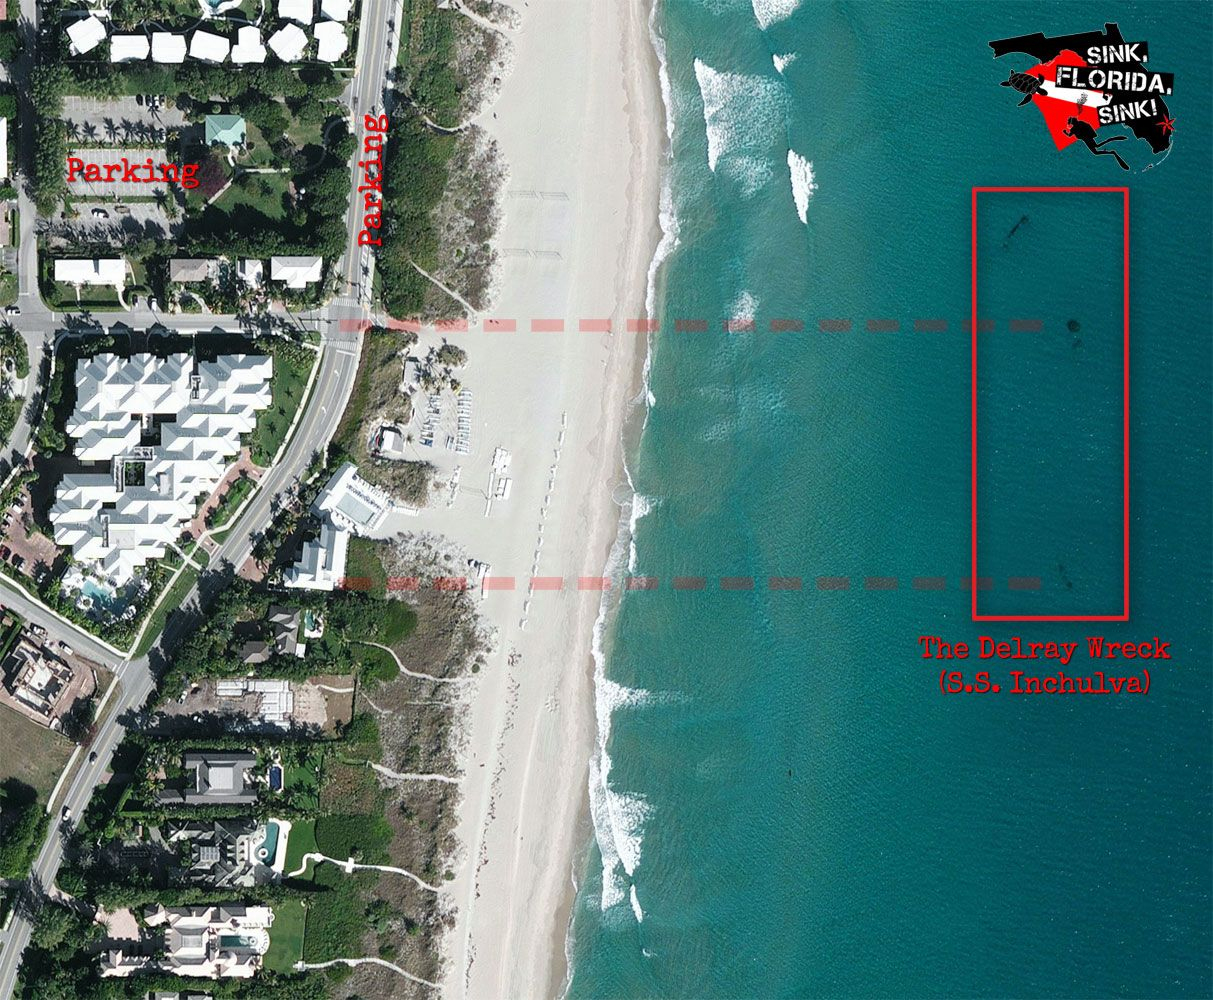 Delray Wreck Map | Map Of The Delray Wreck | Vacay Plans | Florida - Del Ray Florida Map